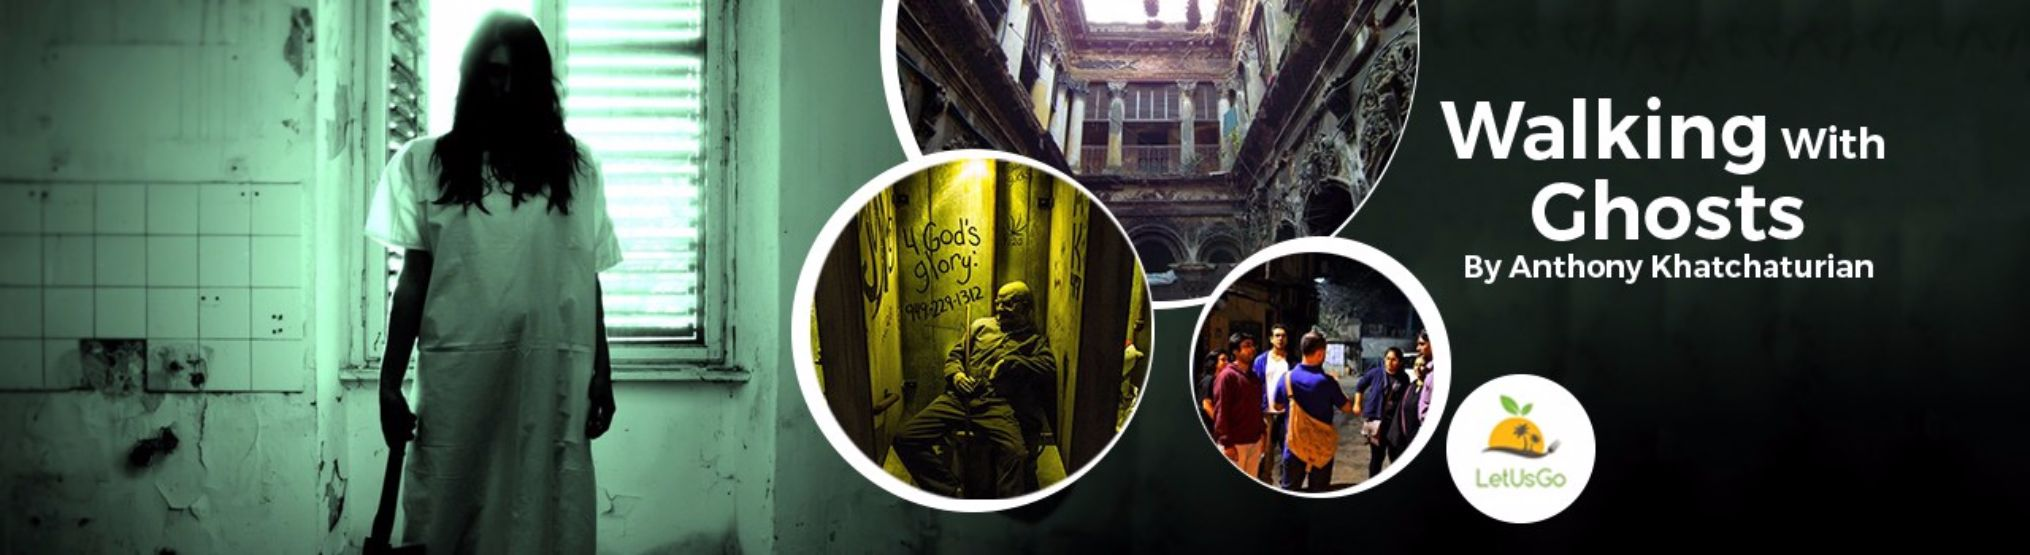 Kolkata Ghost Walk